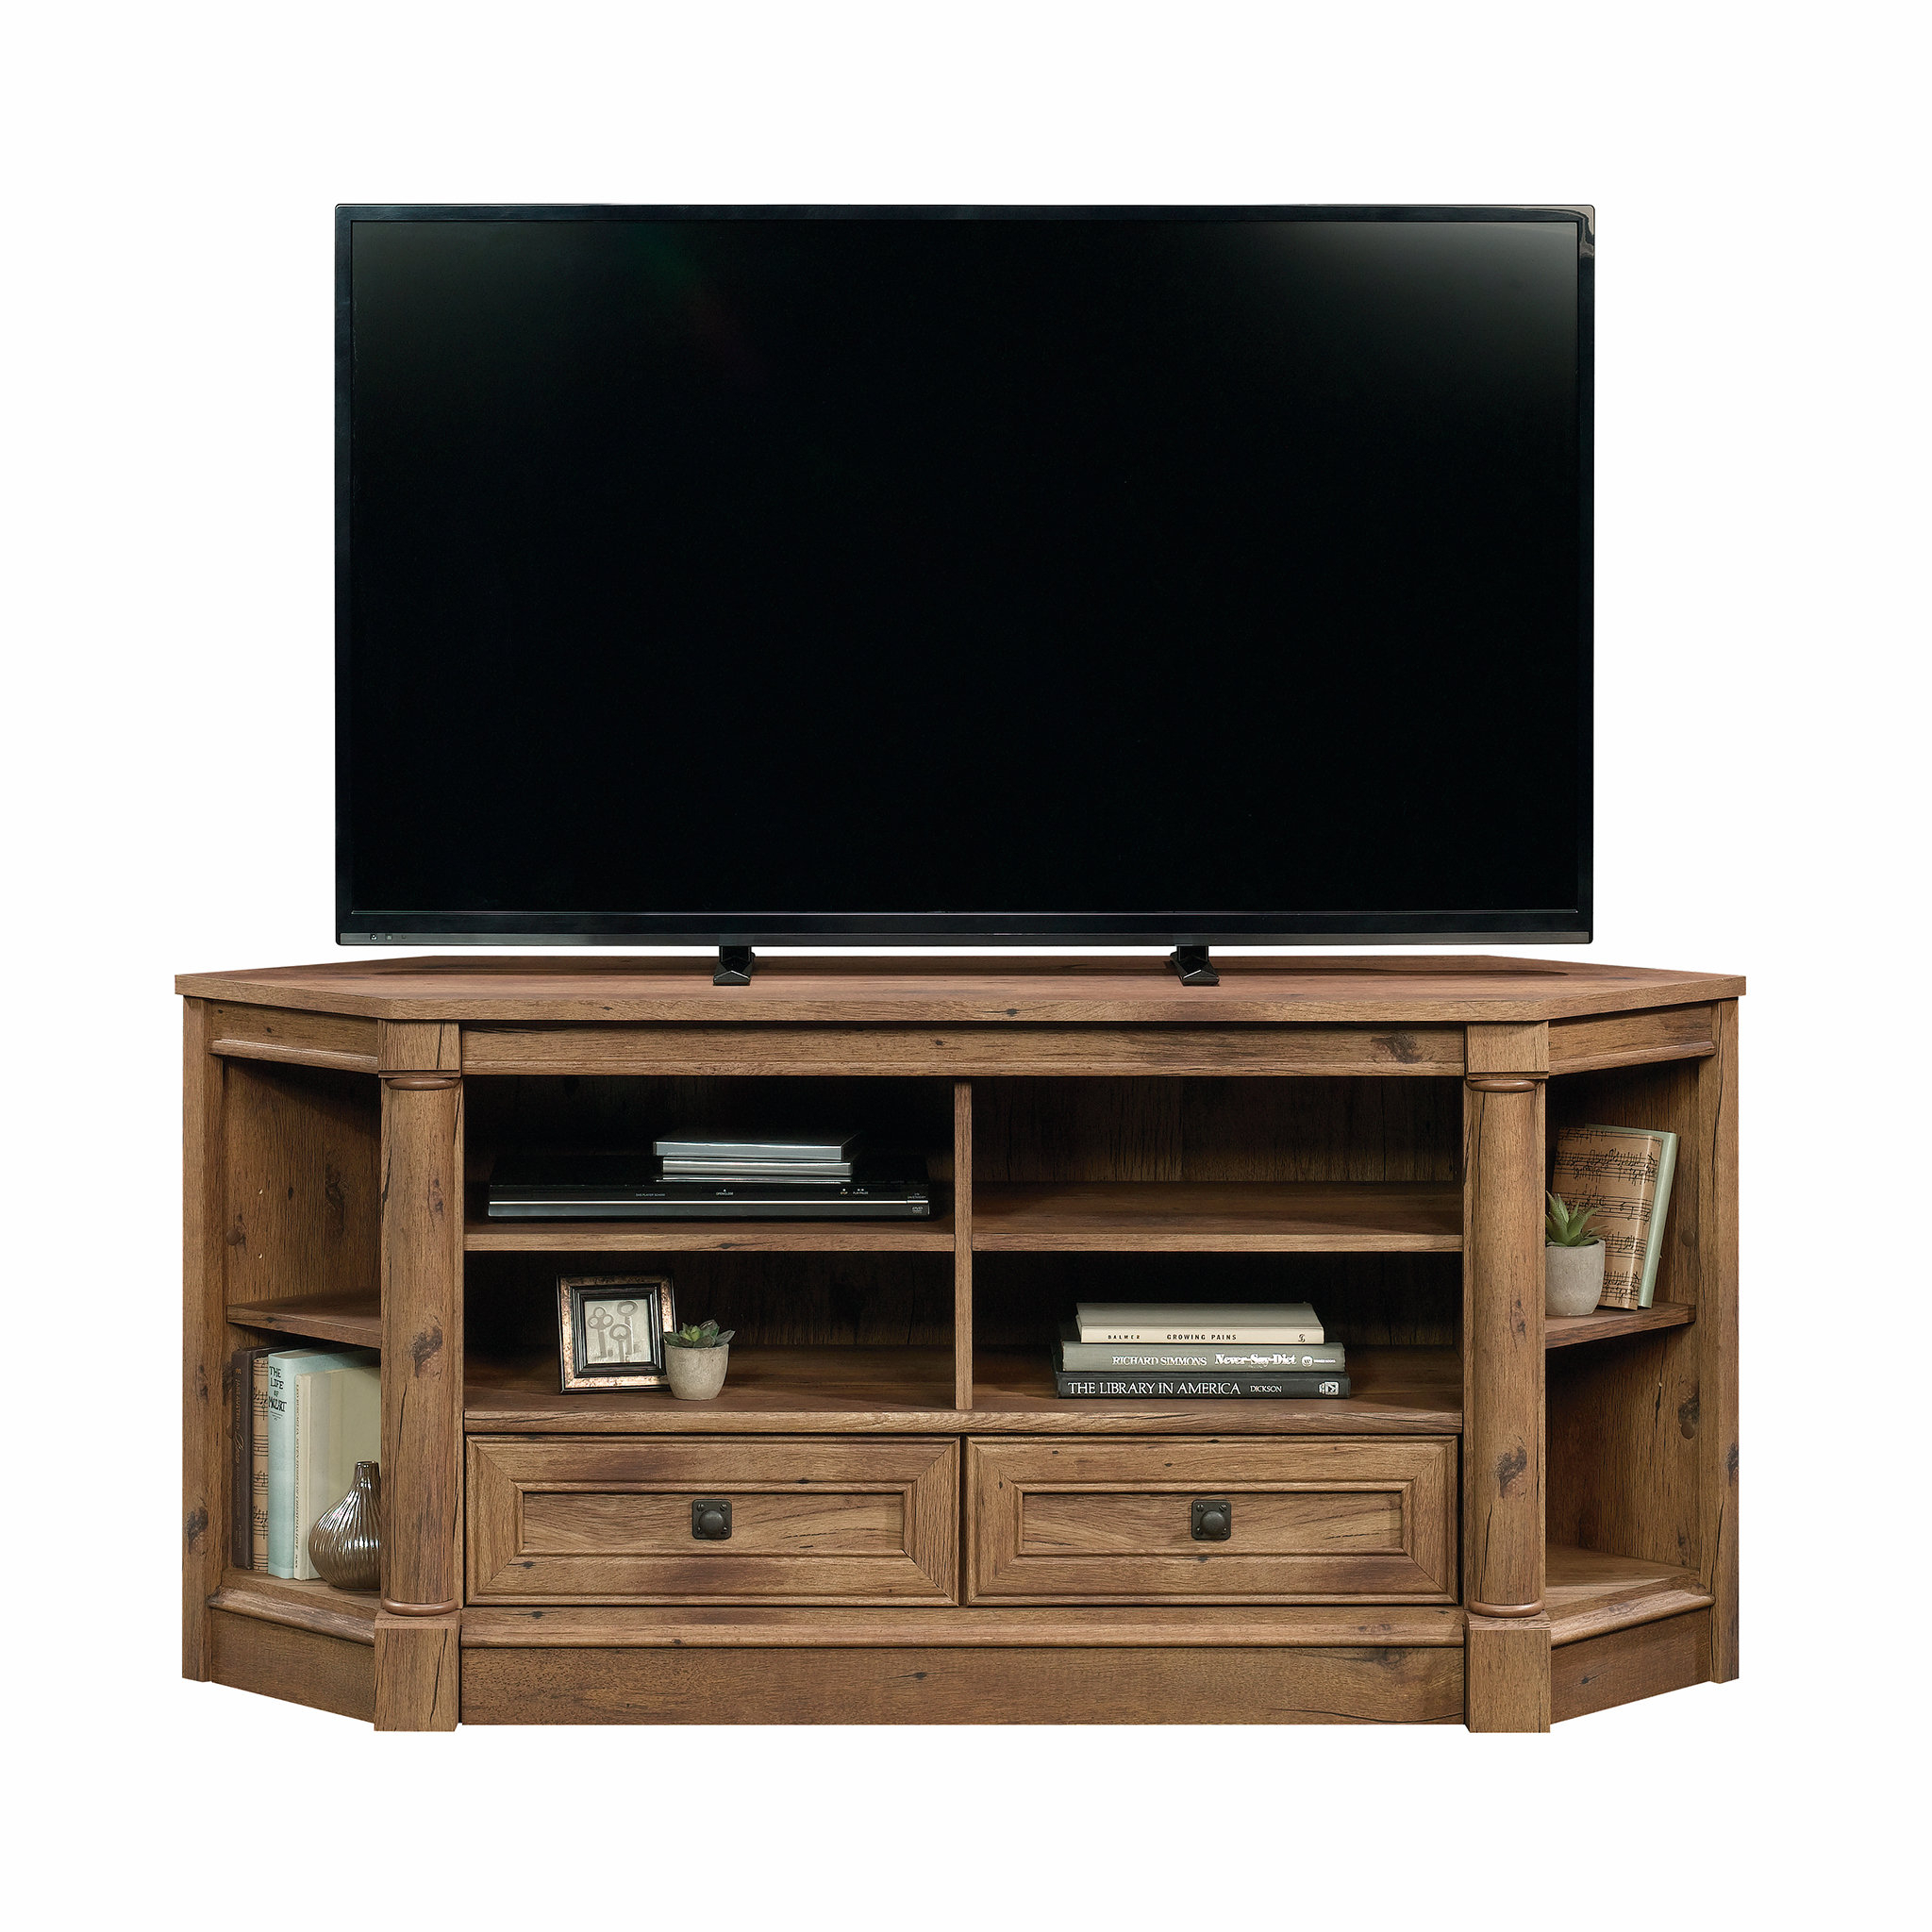 "Orviston Corner Tv Stand For Tvs Up To 60"" & Reviews 